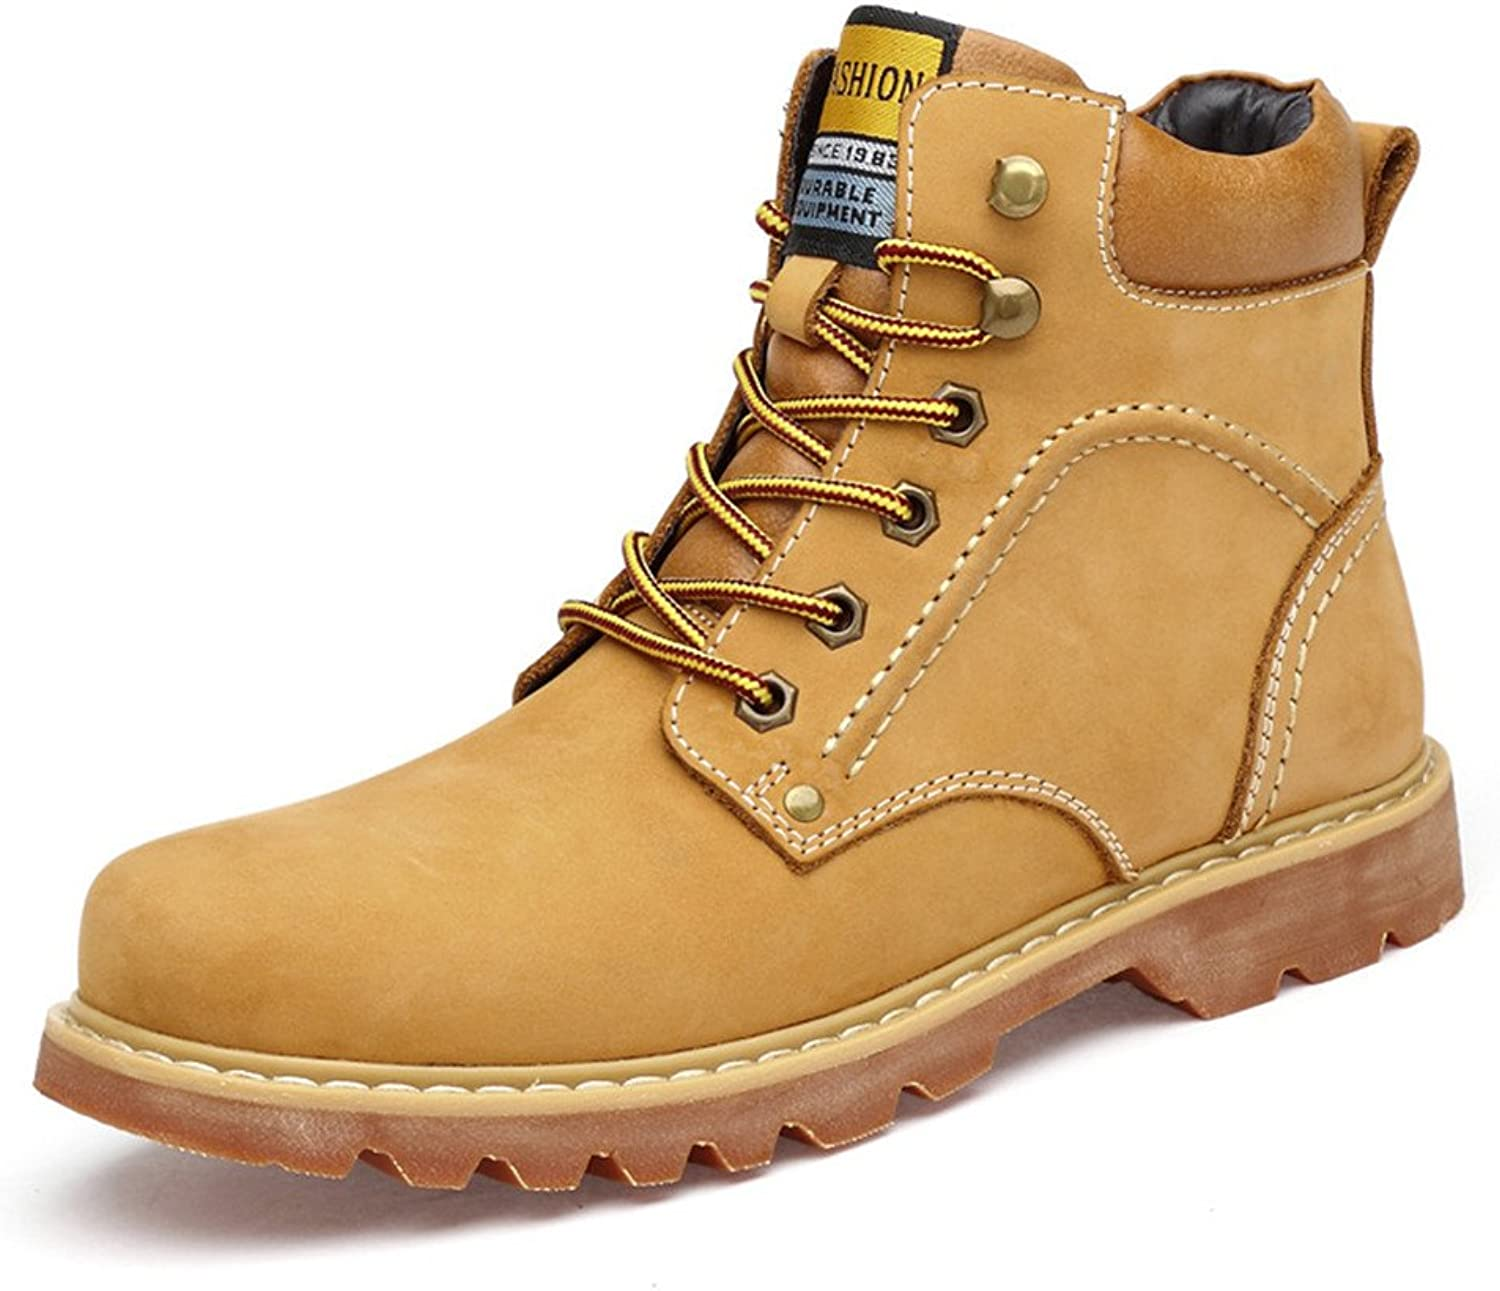 ZQ@QXFall leisure boots high fashion warm large size men's Martin boots